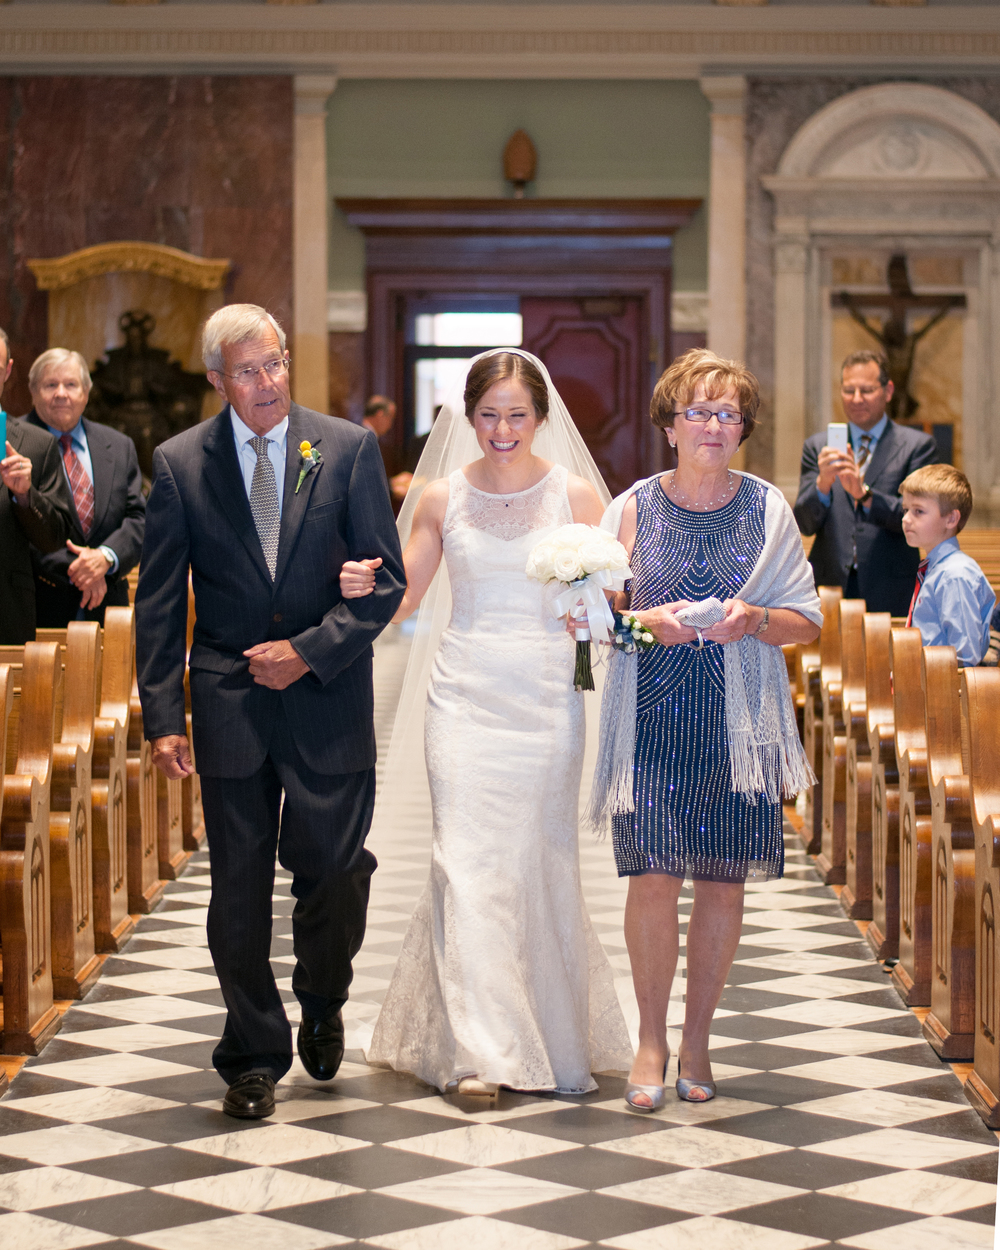 10 3 15_Hoffmann_Wedding-178 copy.jpg